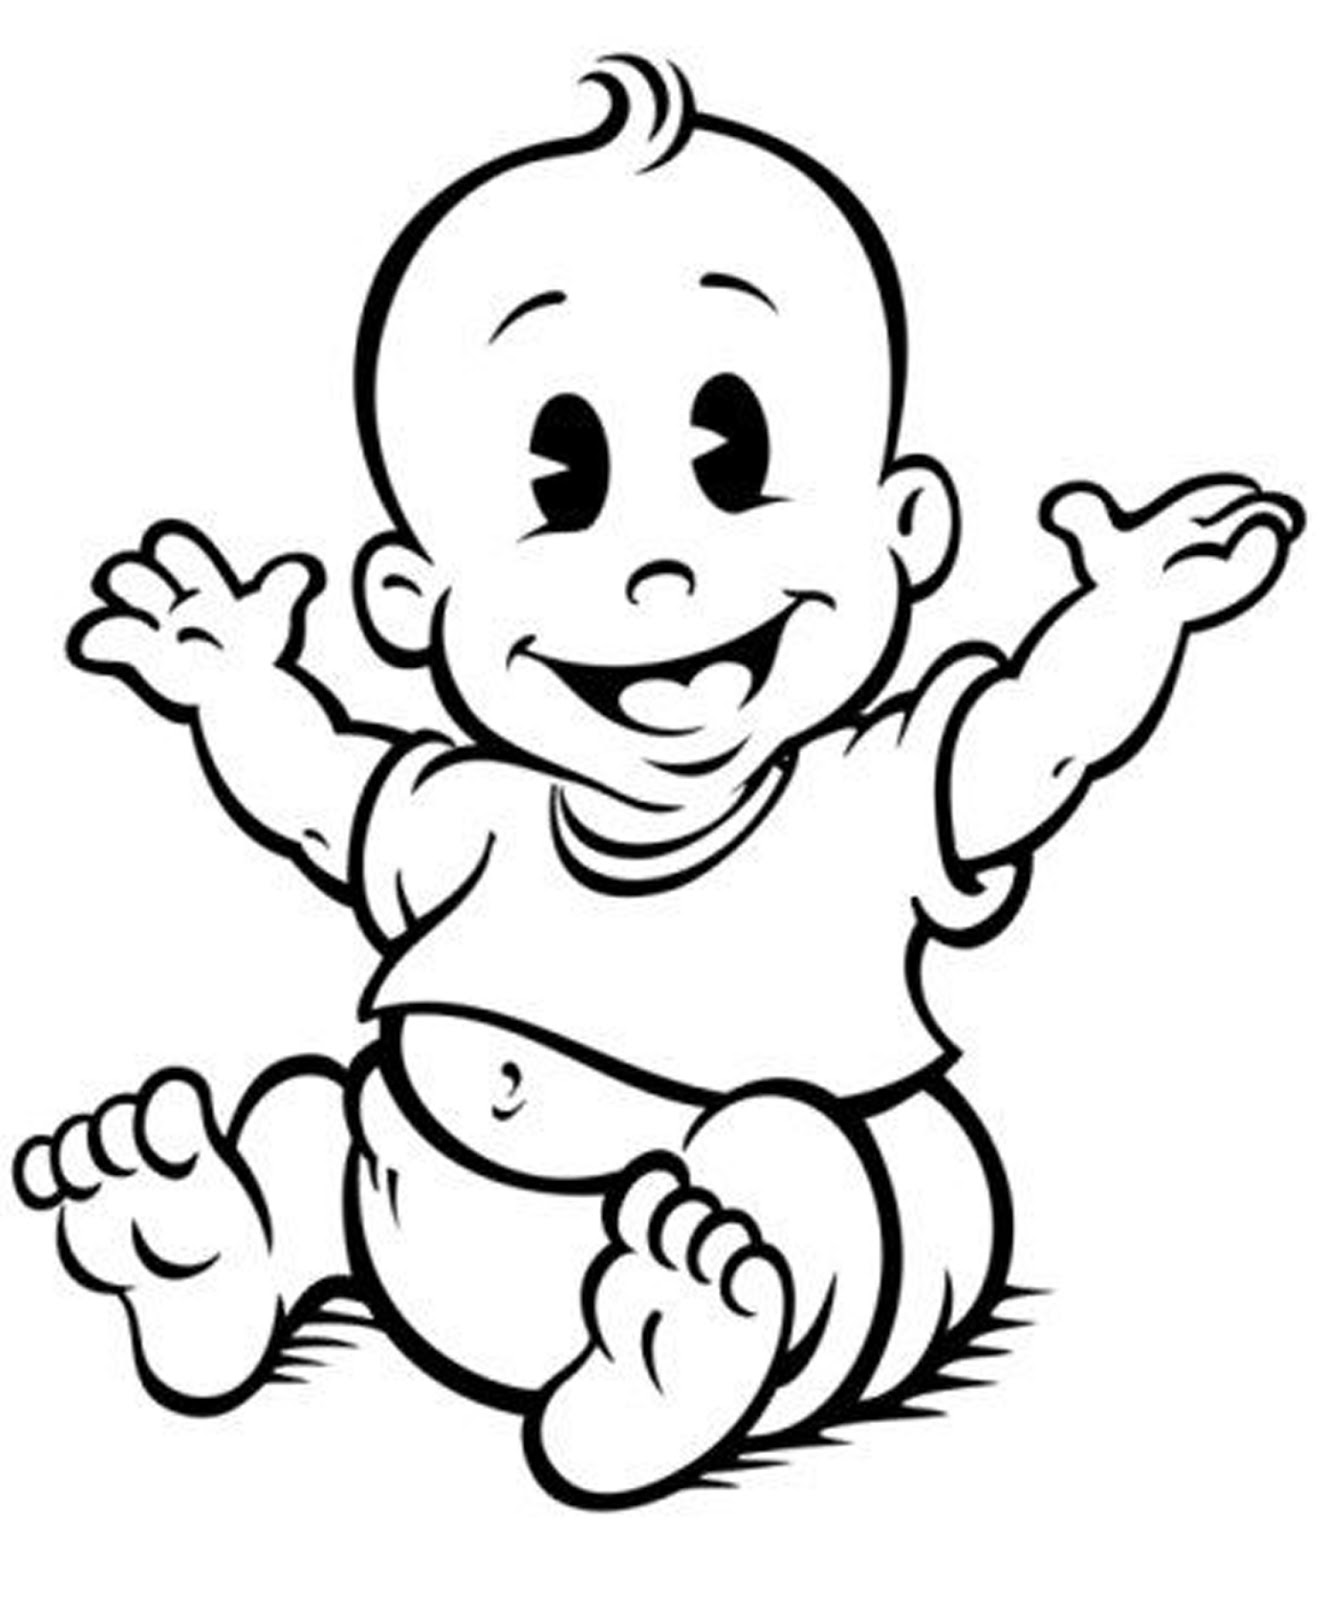 Black baby playing with white baby clipart image download 15+ Baby Clipart | ClipartLook image download